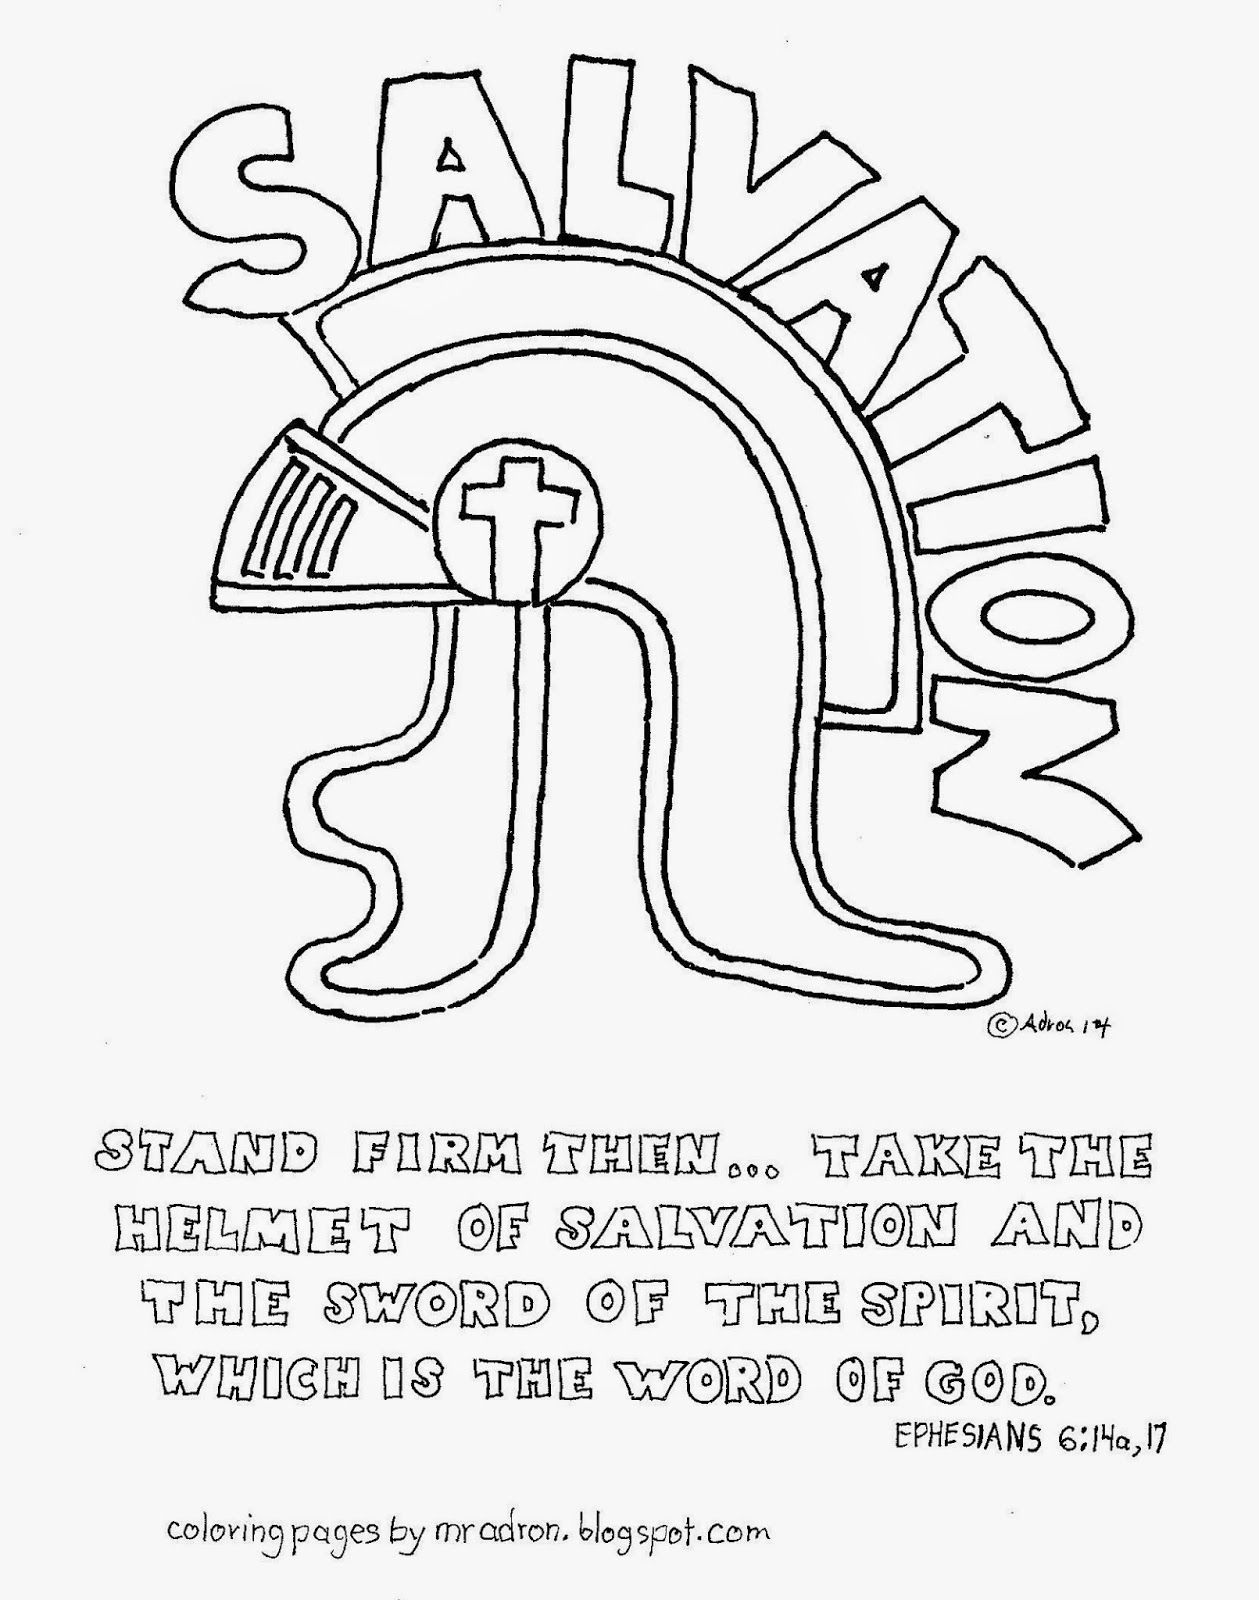 Ephesians 6 coloring pages - The Helmet Of Salvation Kids Coloring Page See More At My Blog Http Coloringpagesbymradron Blogspot Com Coloring Pages For Kid Pinterest Helmets